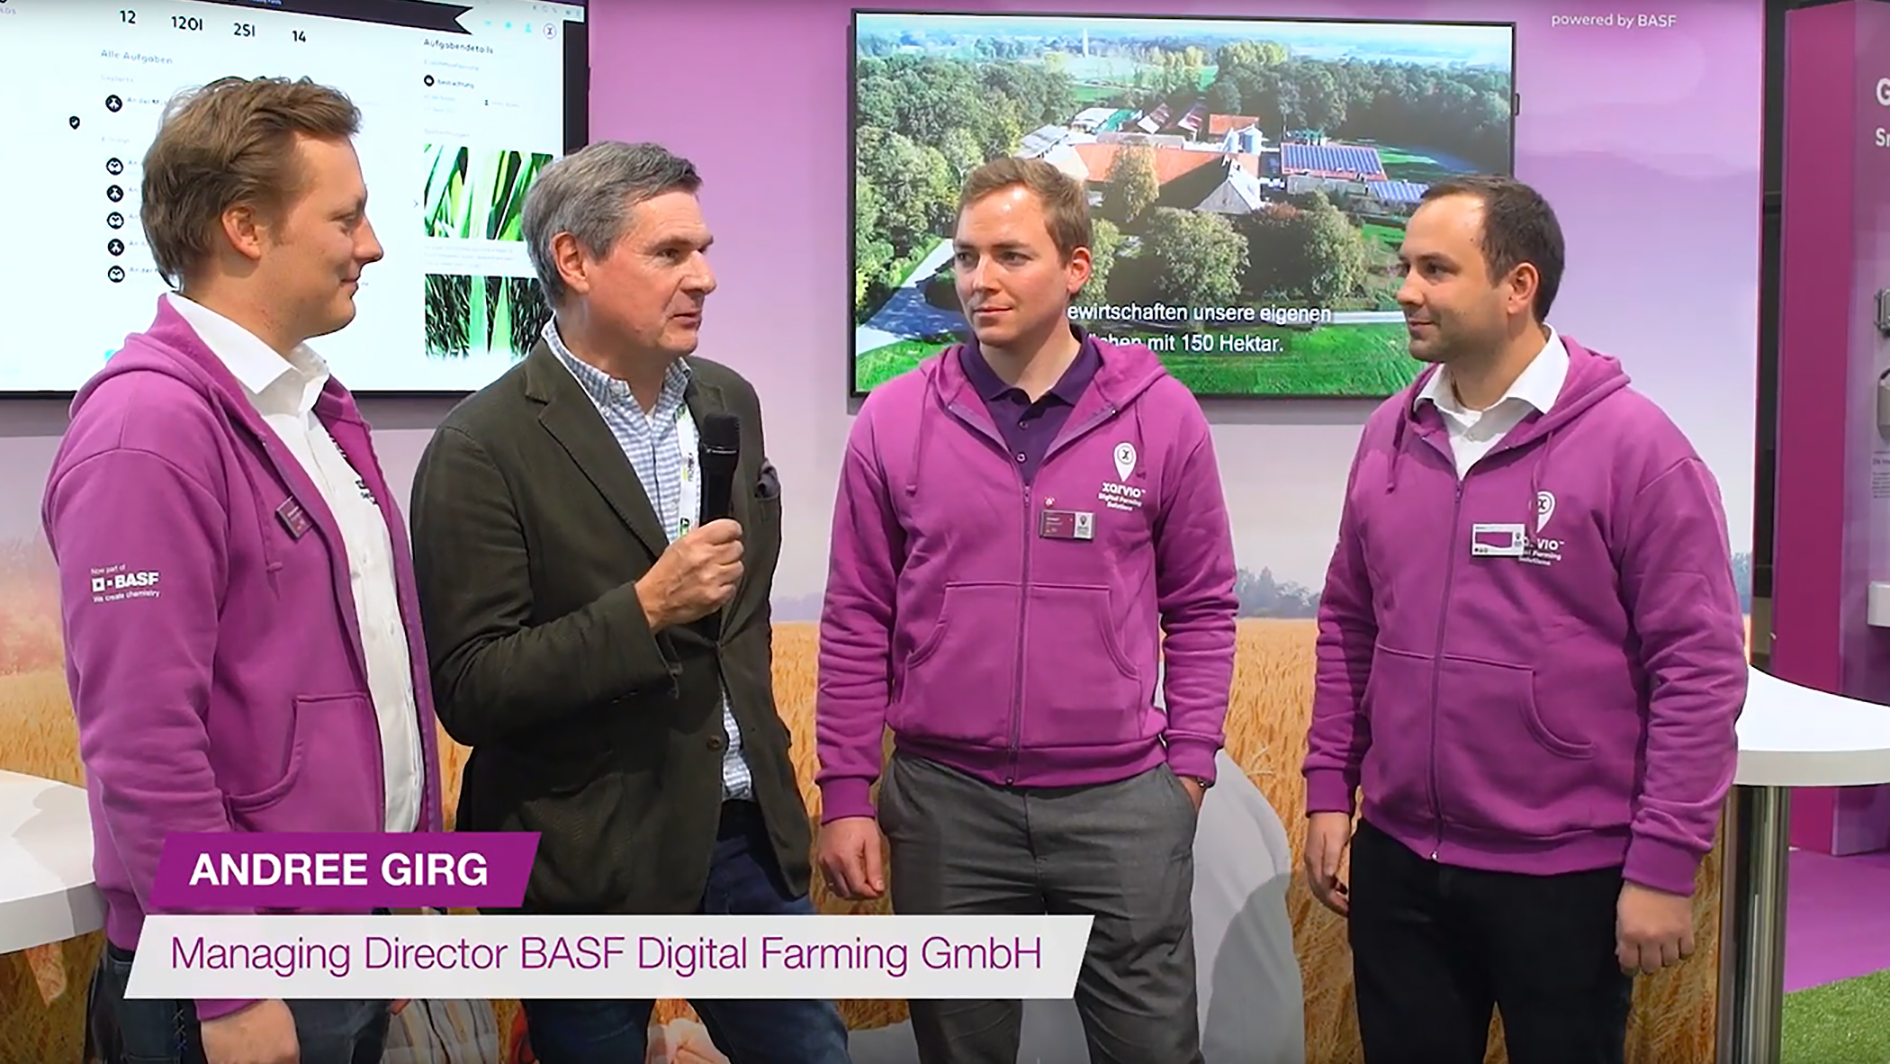 xarvio at Agritechnica 2019 - Evaluation interview